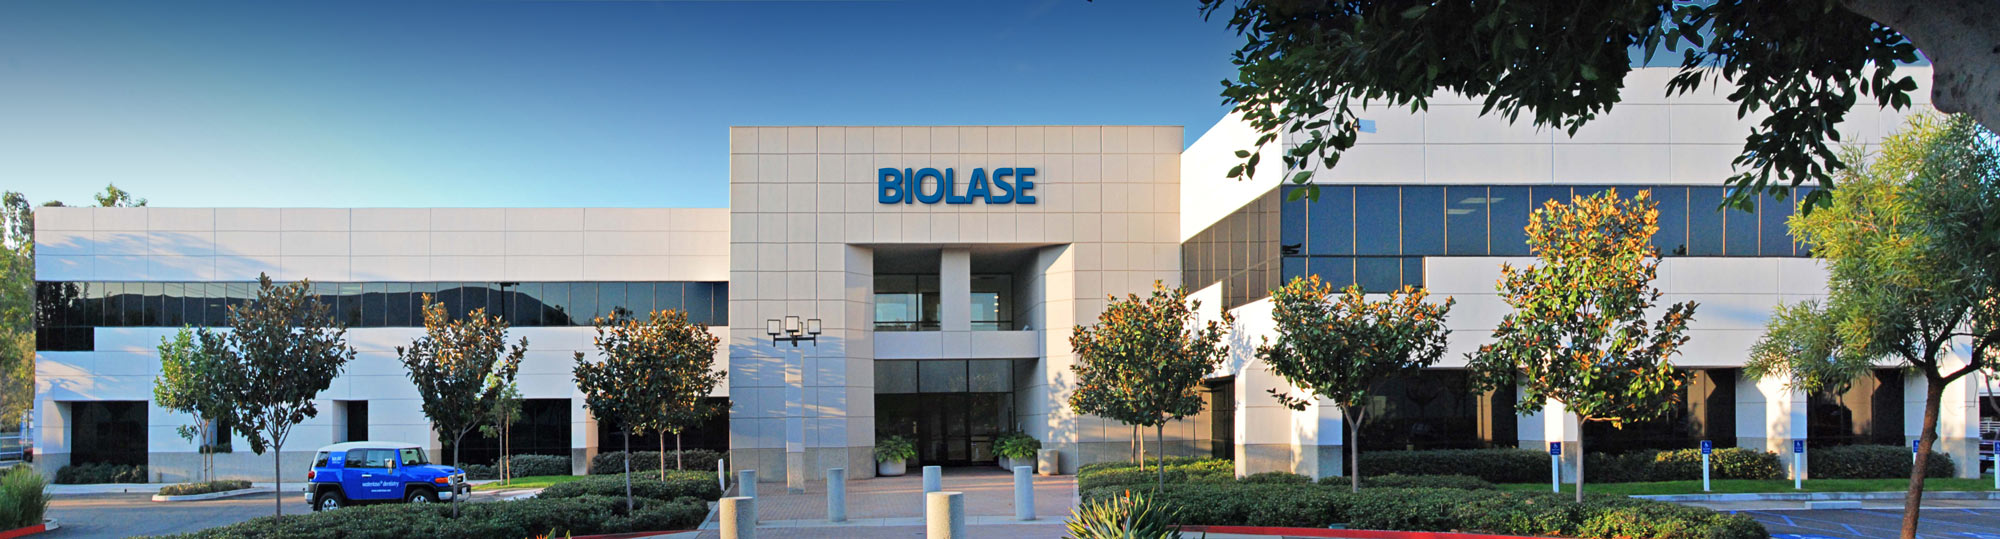 BIOLASE Headquarters